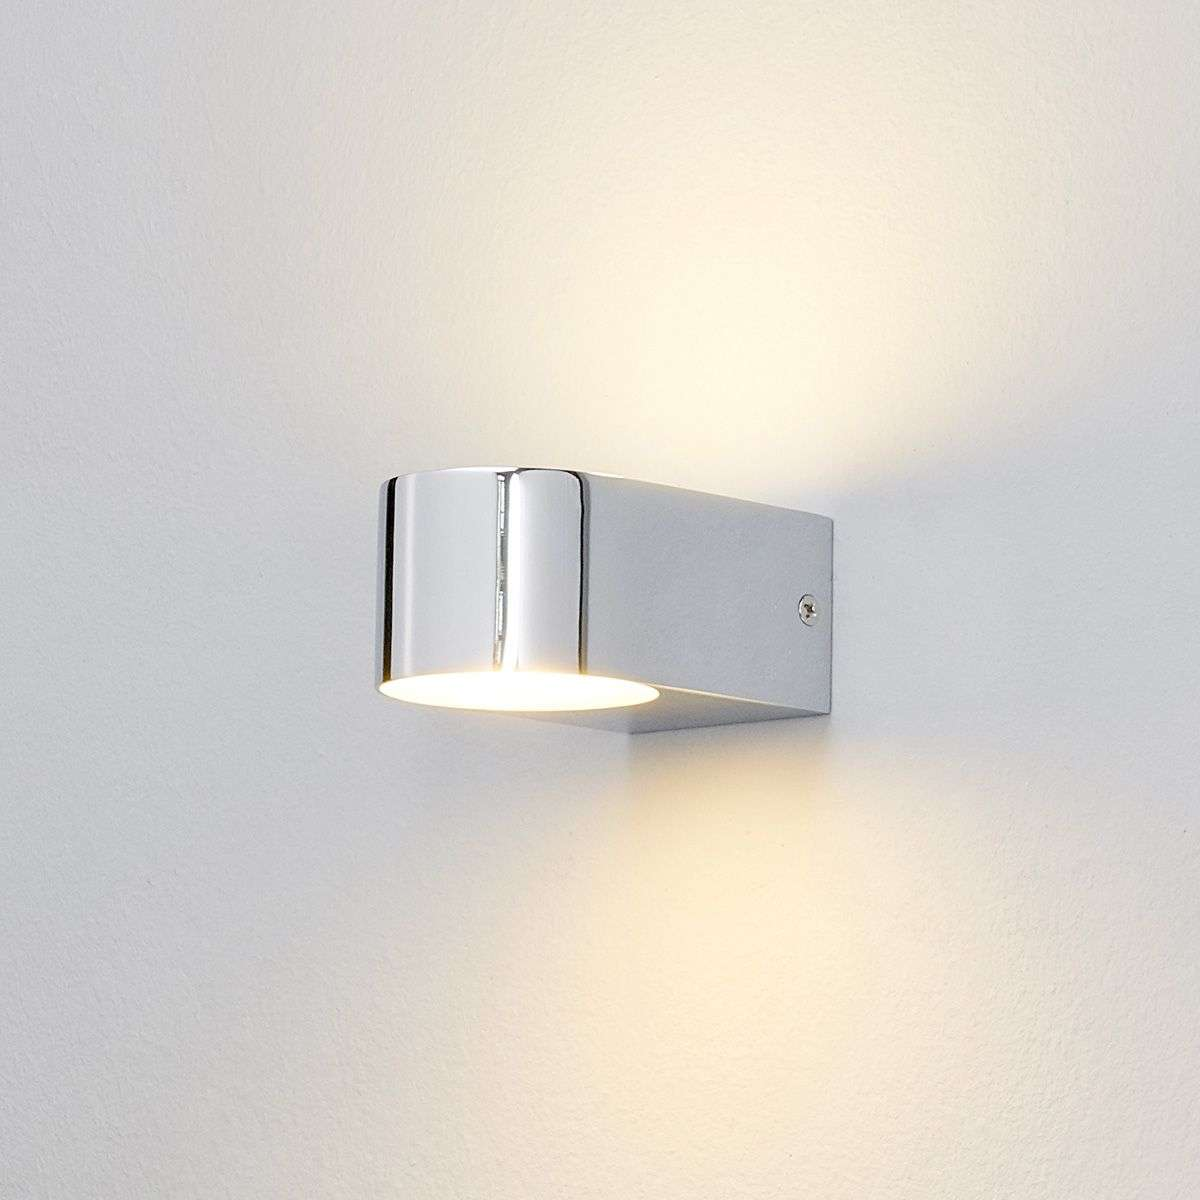 Acquista Applique per bagno a LED Marielle cromo | Lampade.it